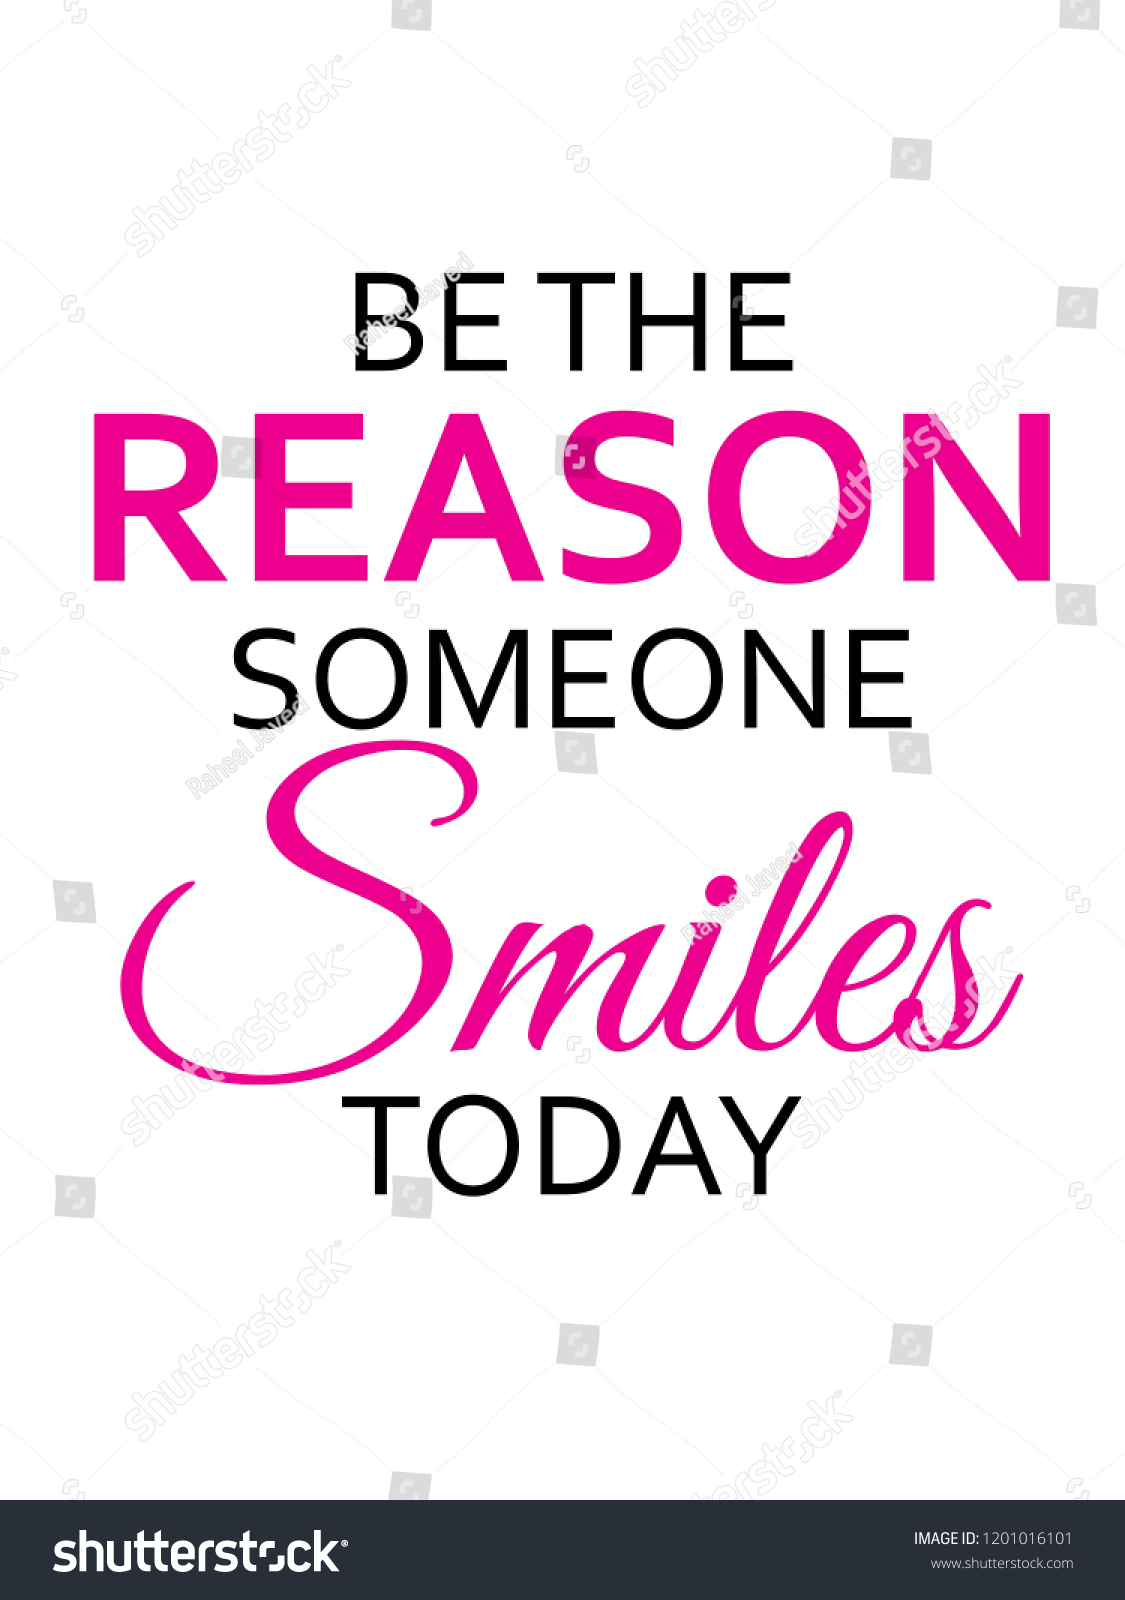 Be Reason Someone Smiles Today Vector Stock Vector Royalty Free